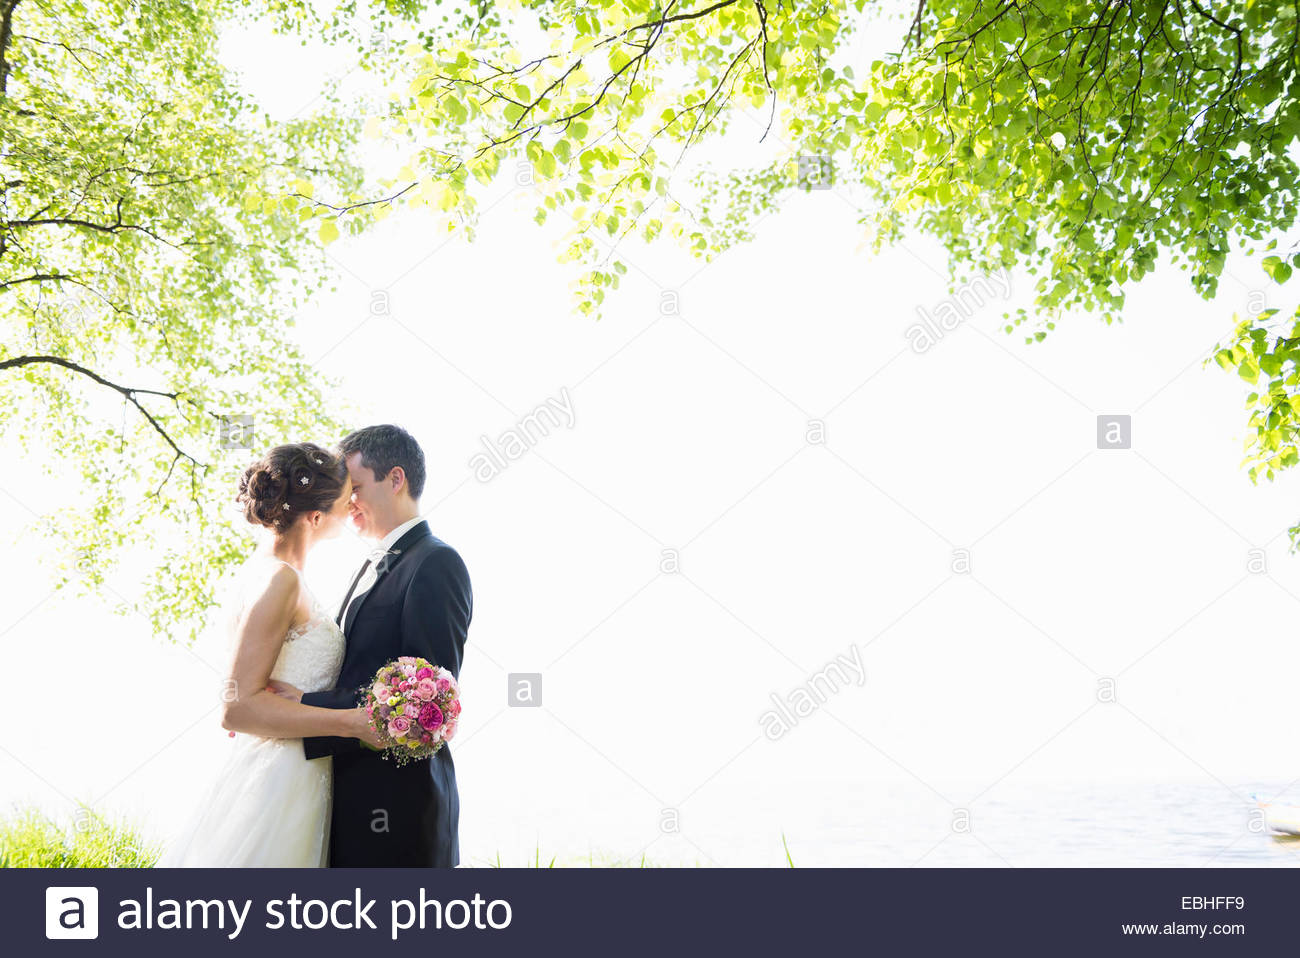 Romantic newlywed mid adult couple kissing in park - Stock Image